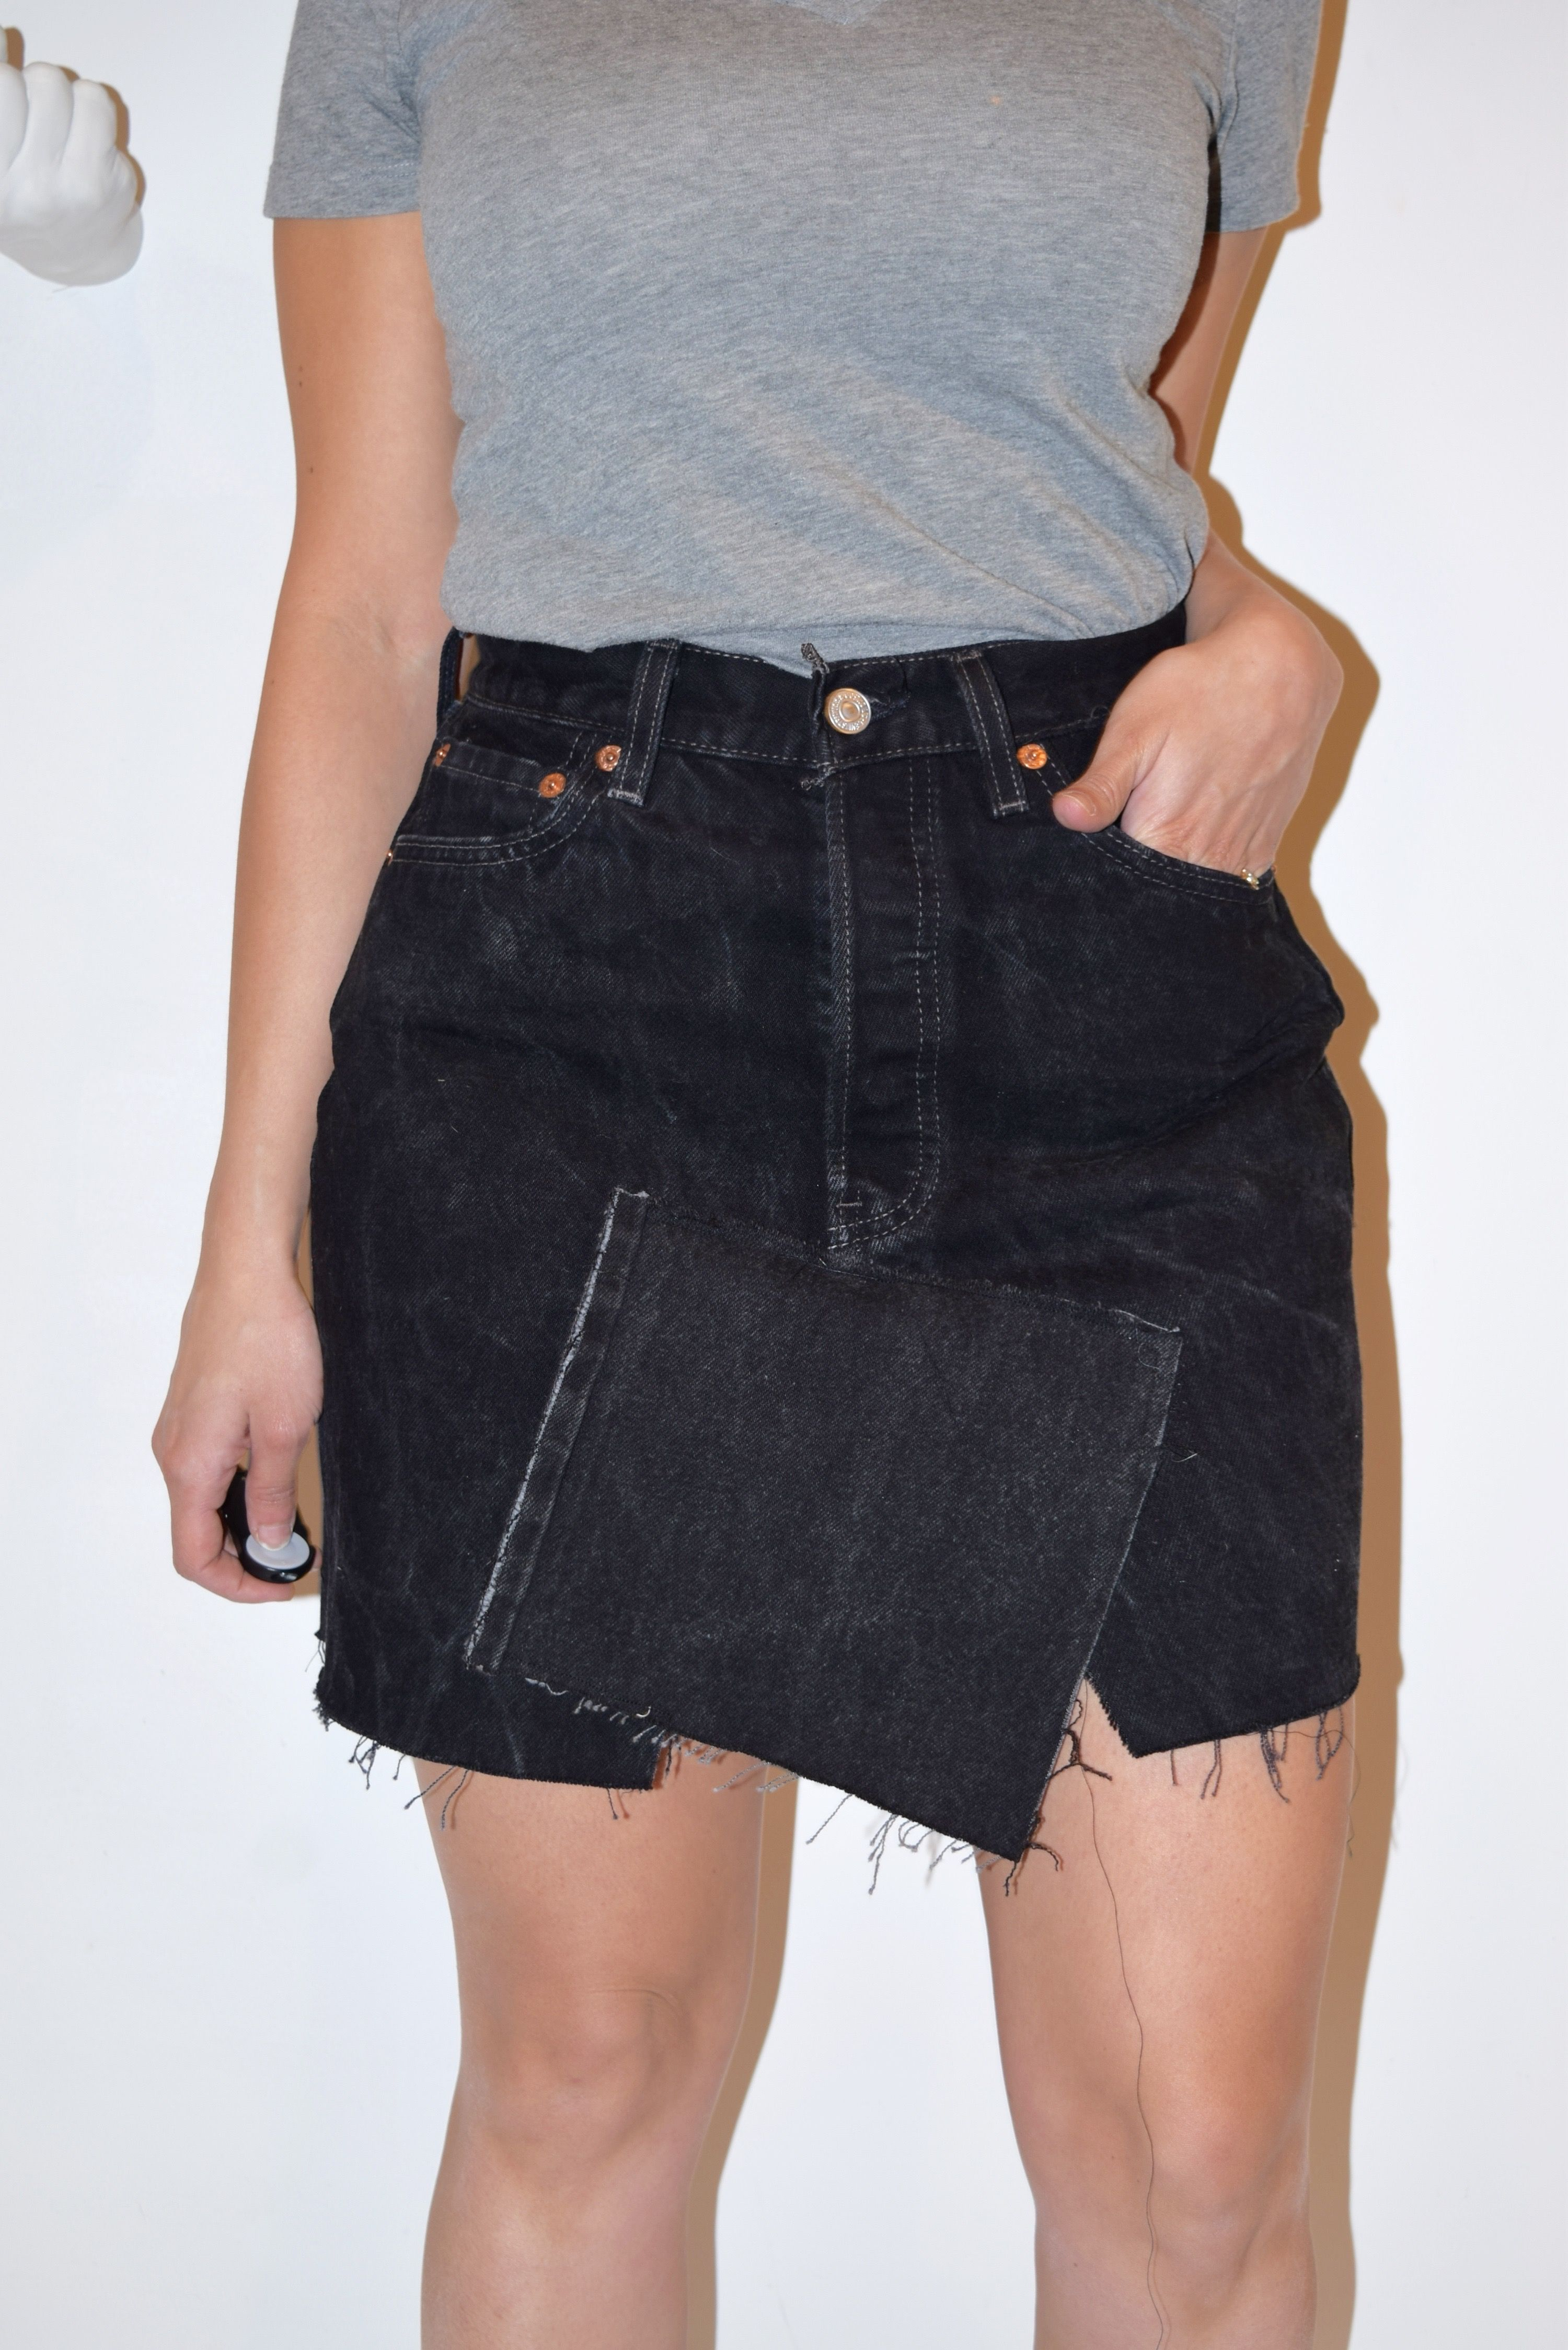 2019 year for lady- Long Levi denim skirts pictures